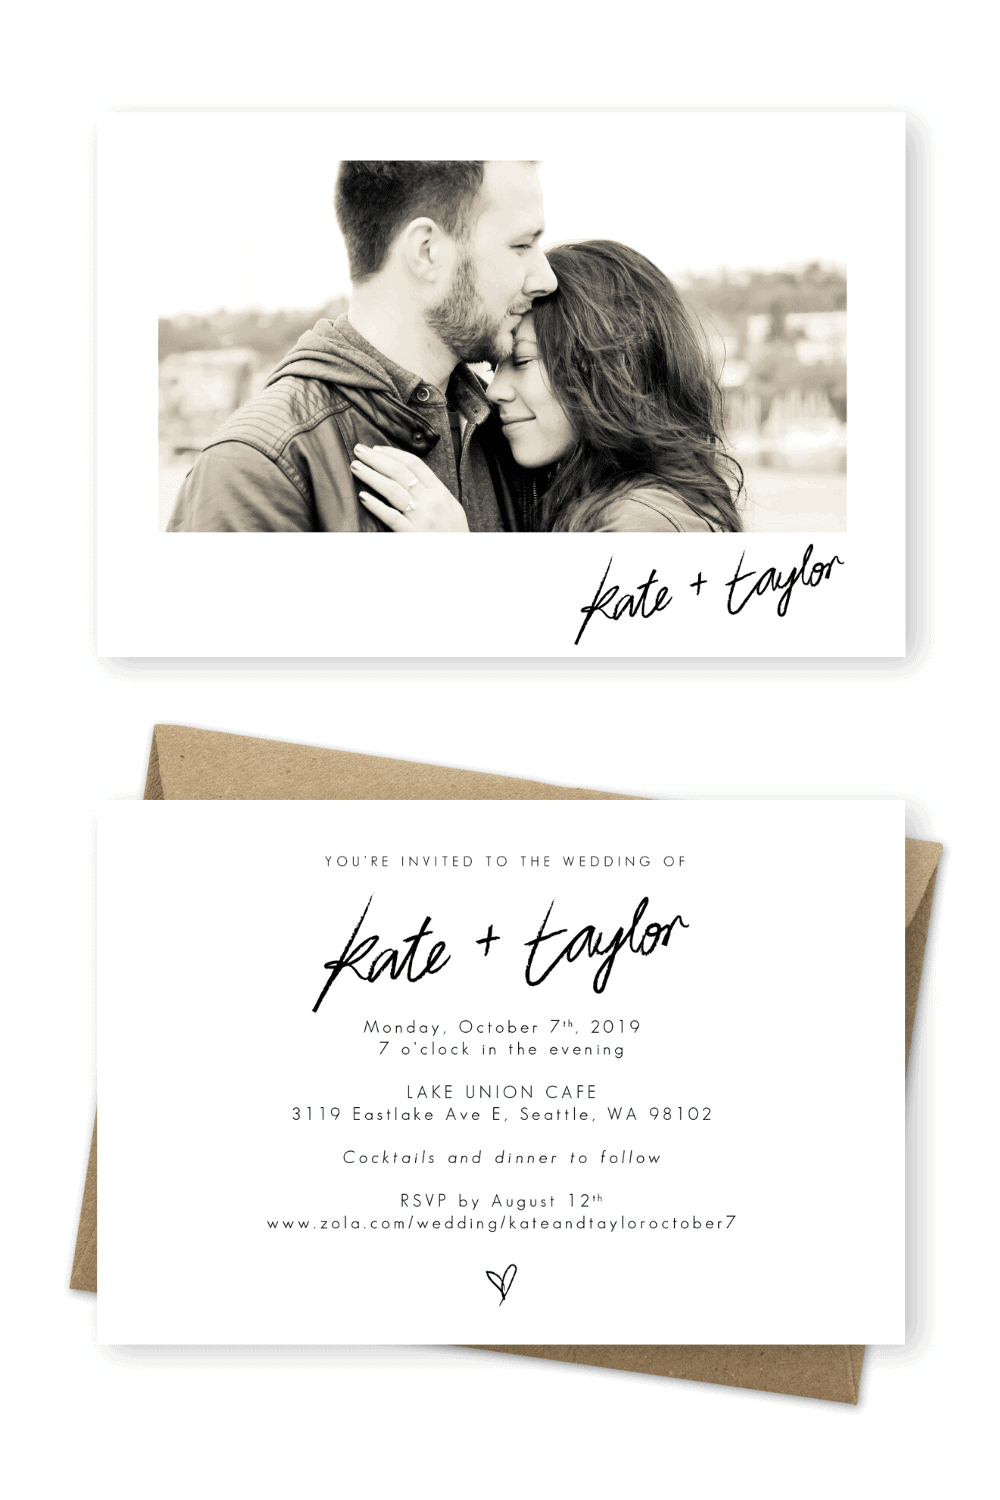 Wedding Invitations Cards Online Photo Wedding Invites Pamela S. Photography For the Love of Stationery